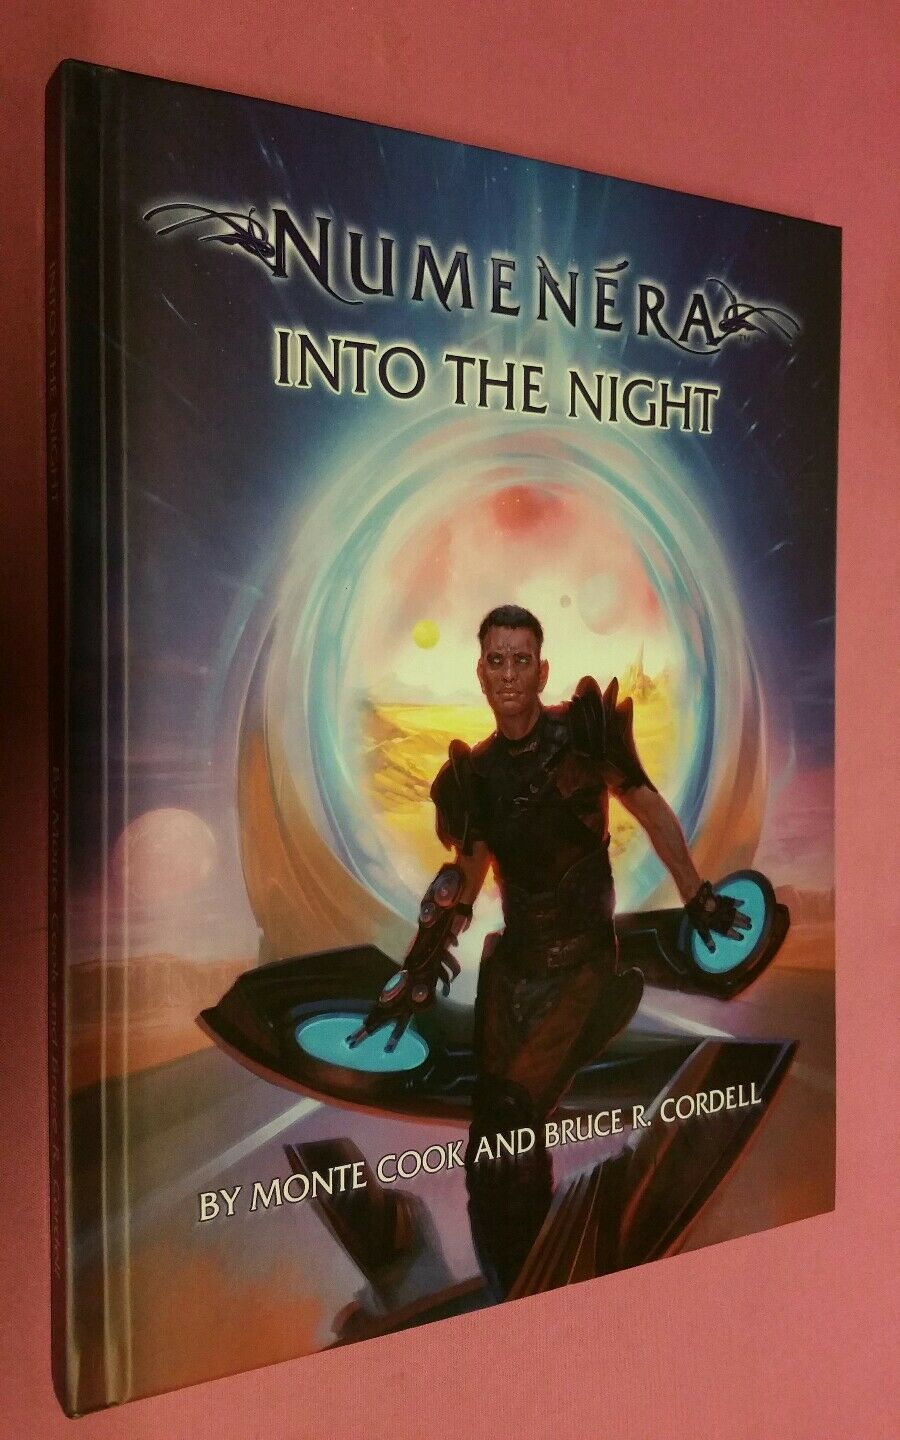 INTO THE NIGHT - NUMENERA MONTE COOK RPG FANTASY SCIFI DND D&D ROLEPLAY GAME